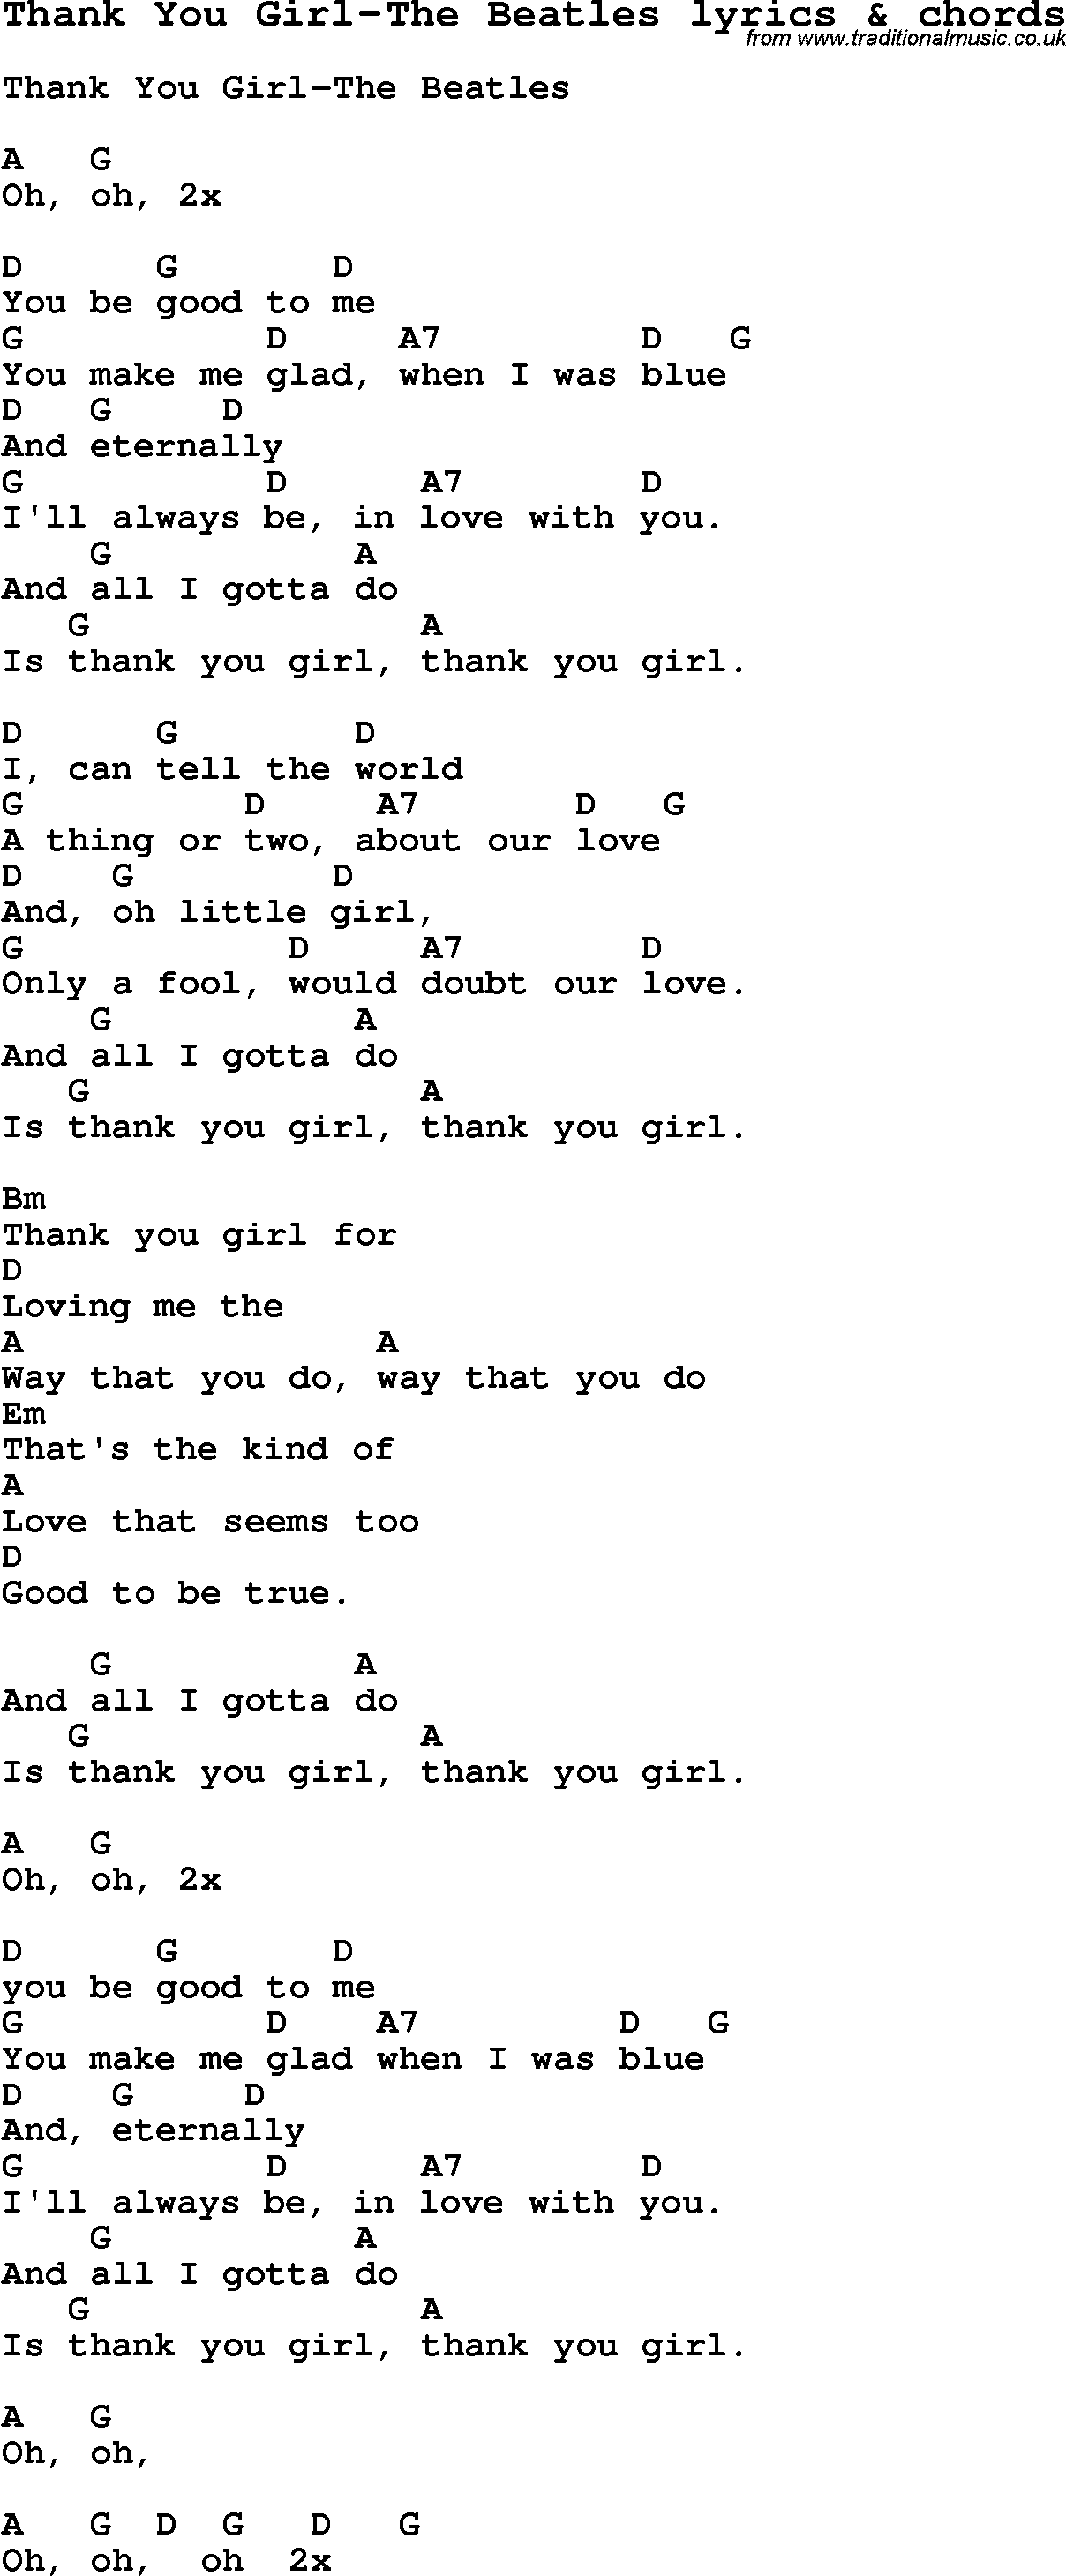 Love Song Lyrics for:Thank You Girl-The Beatles with chords.